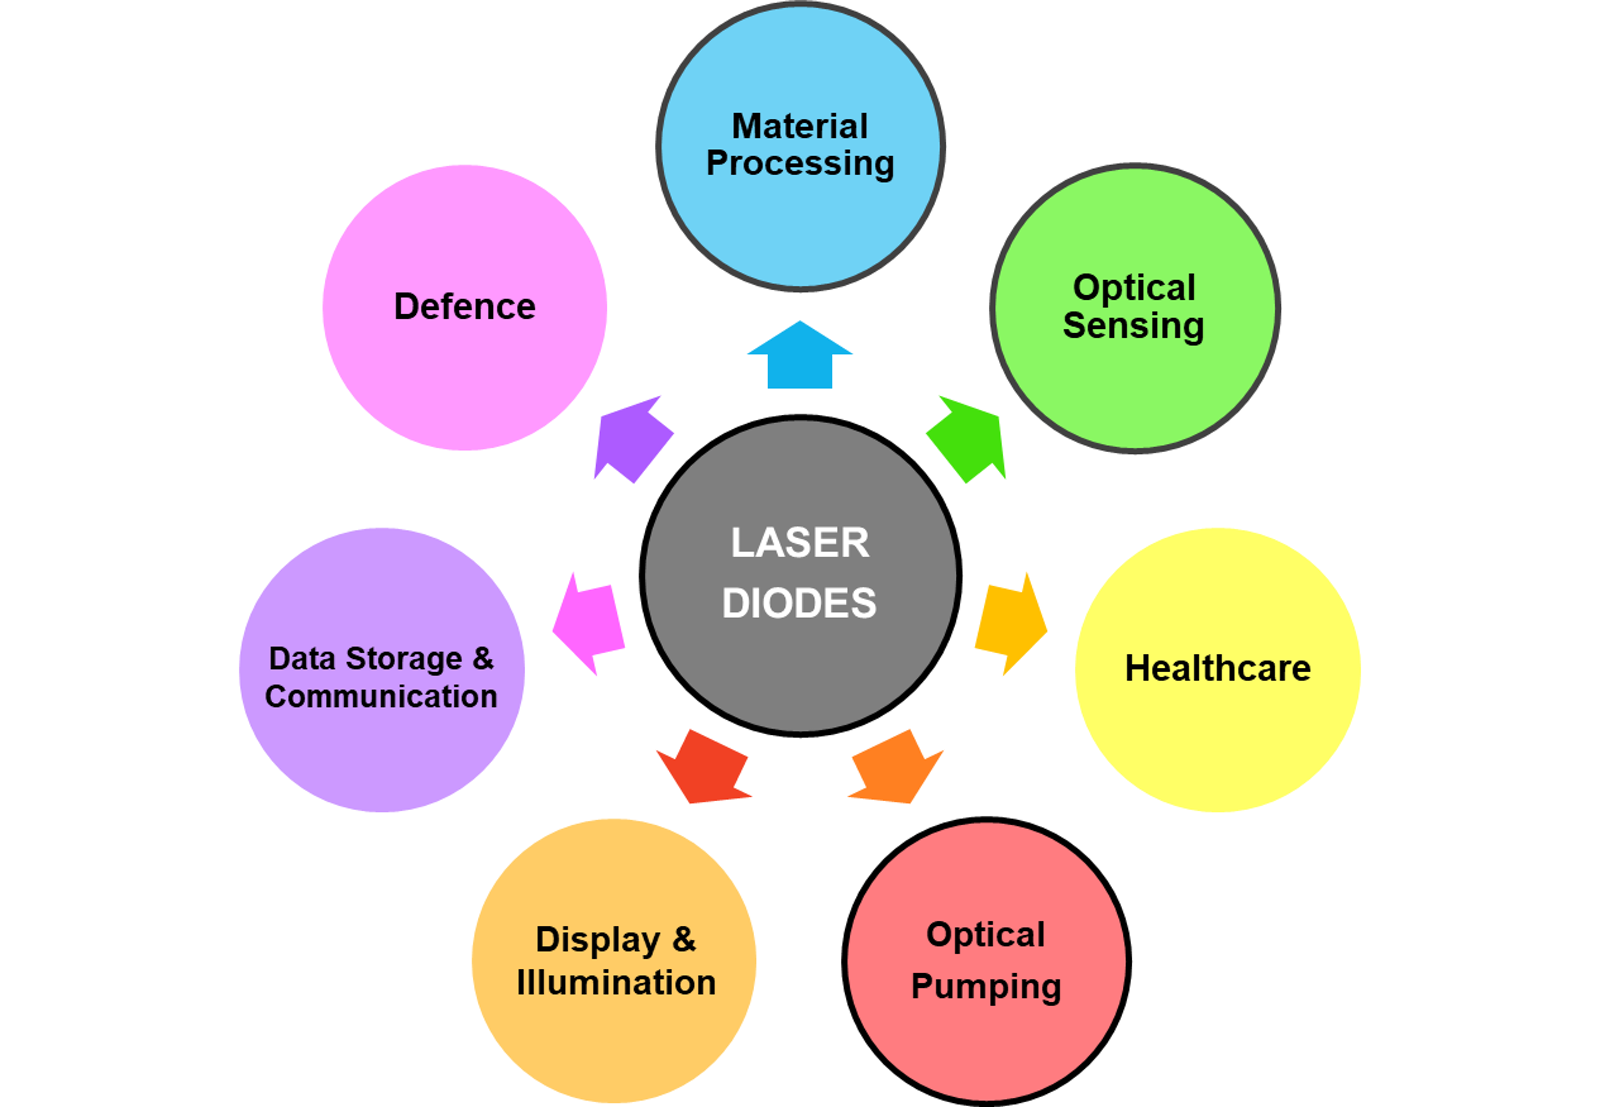 Laser Diodes & Direct Diode Lasers 2019-2029: Technologies